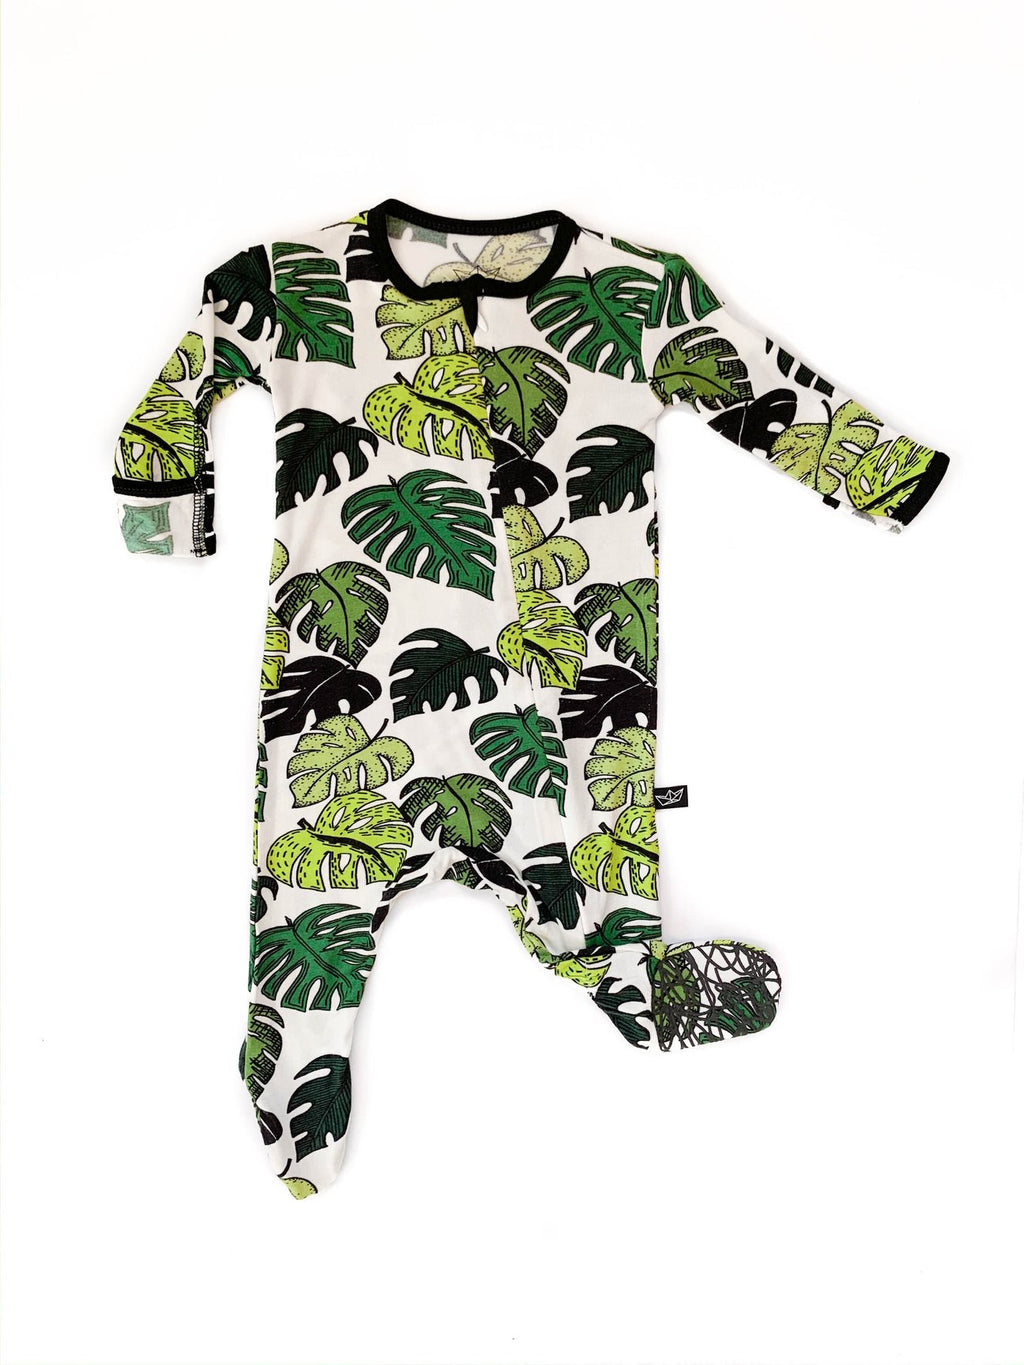 Peregrine Kidswear - Palm Leaves Bamboo Footed Sleeper